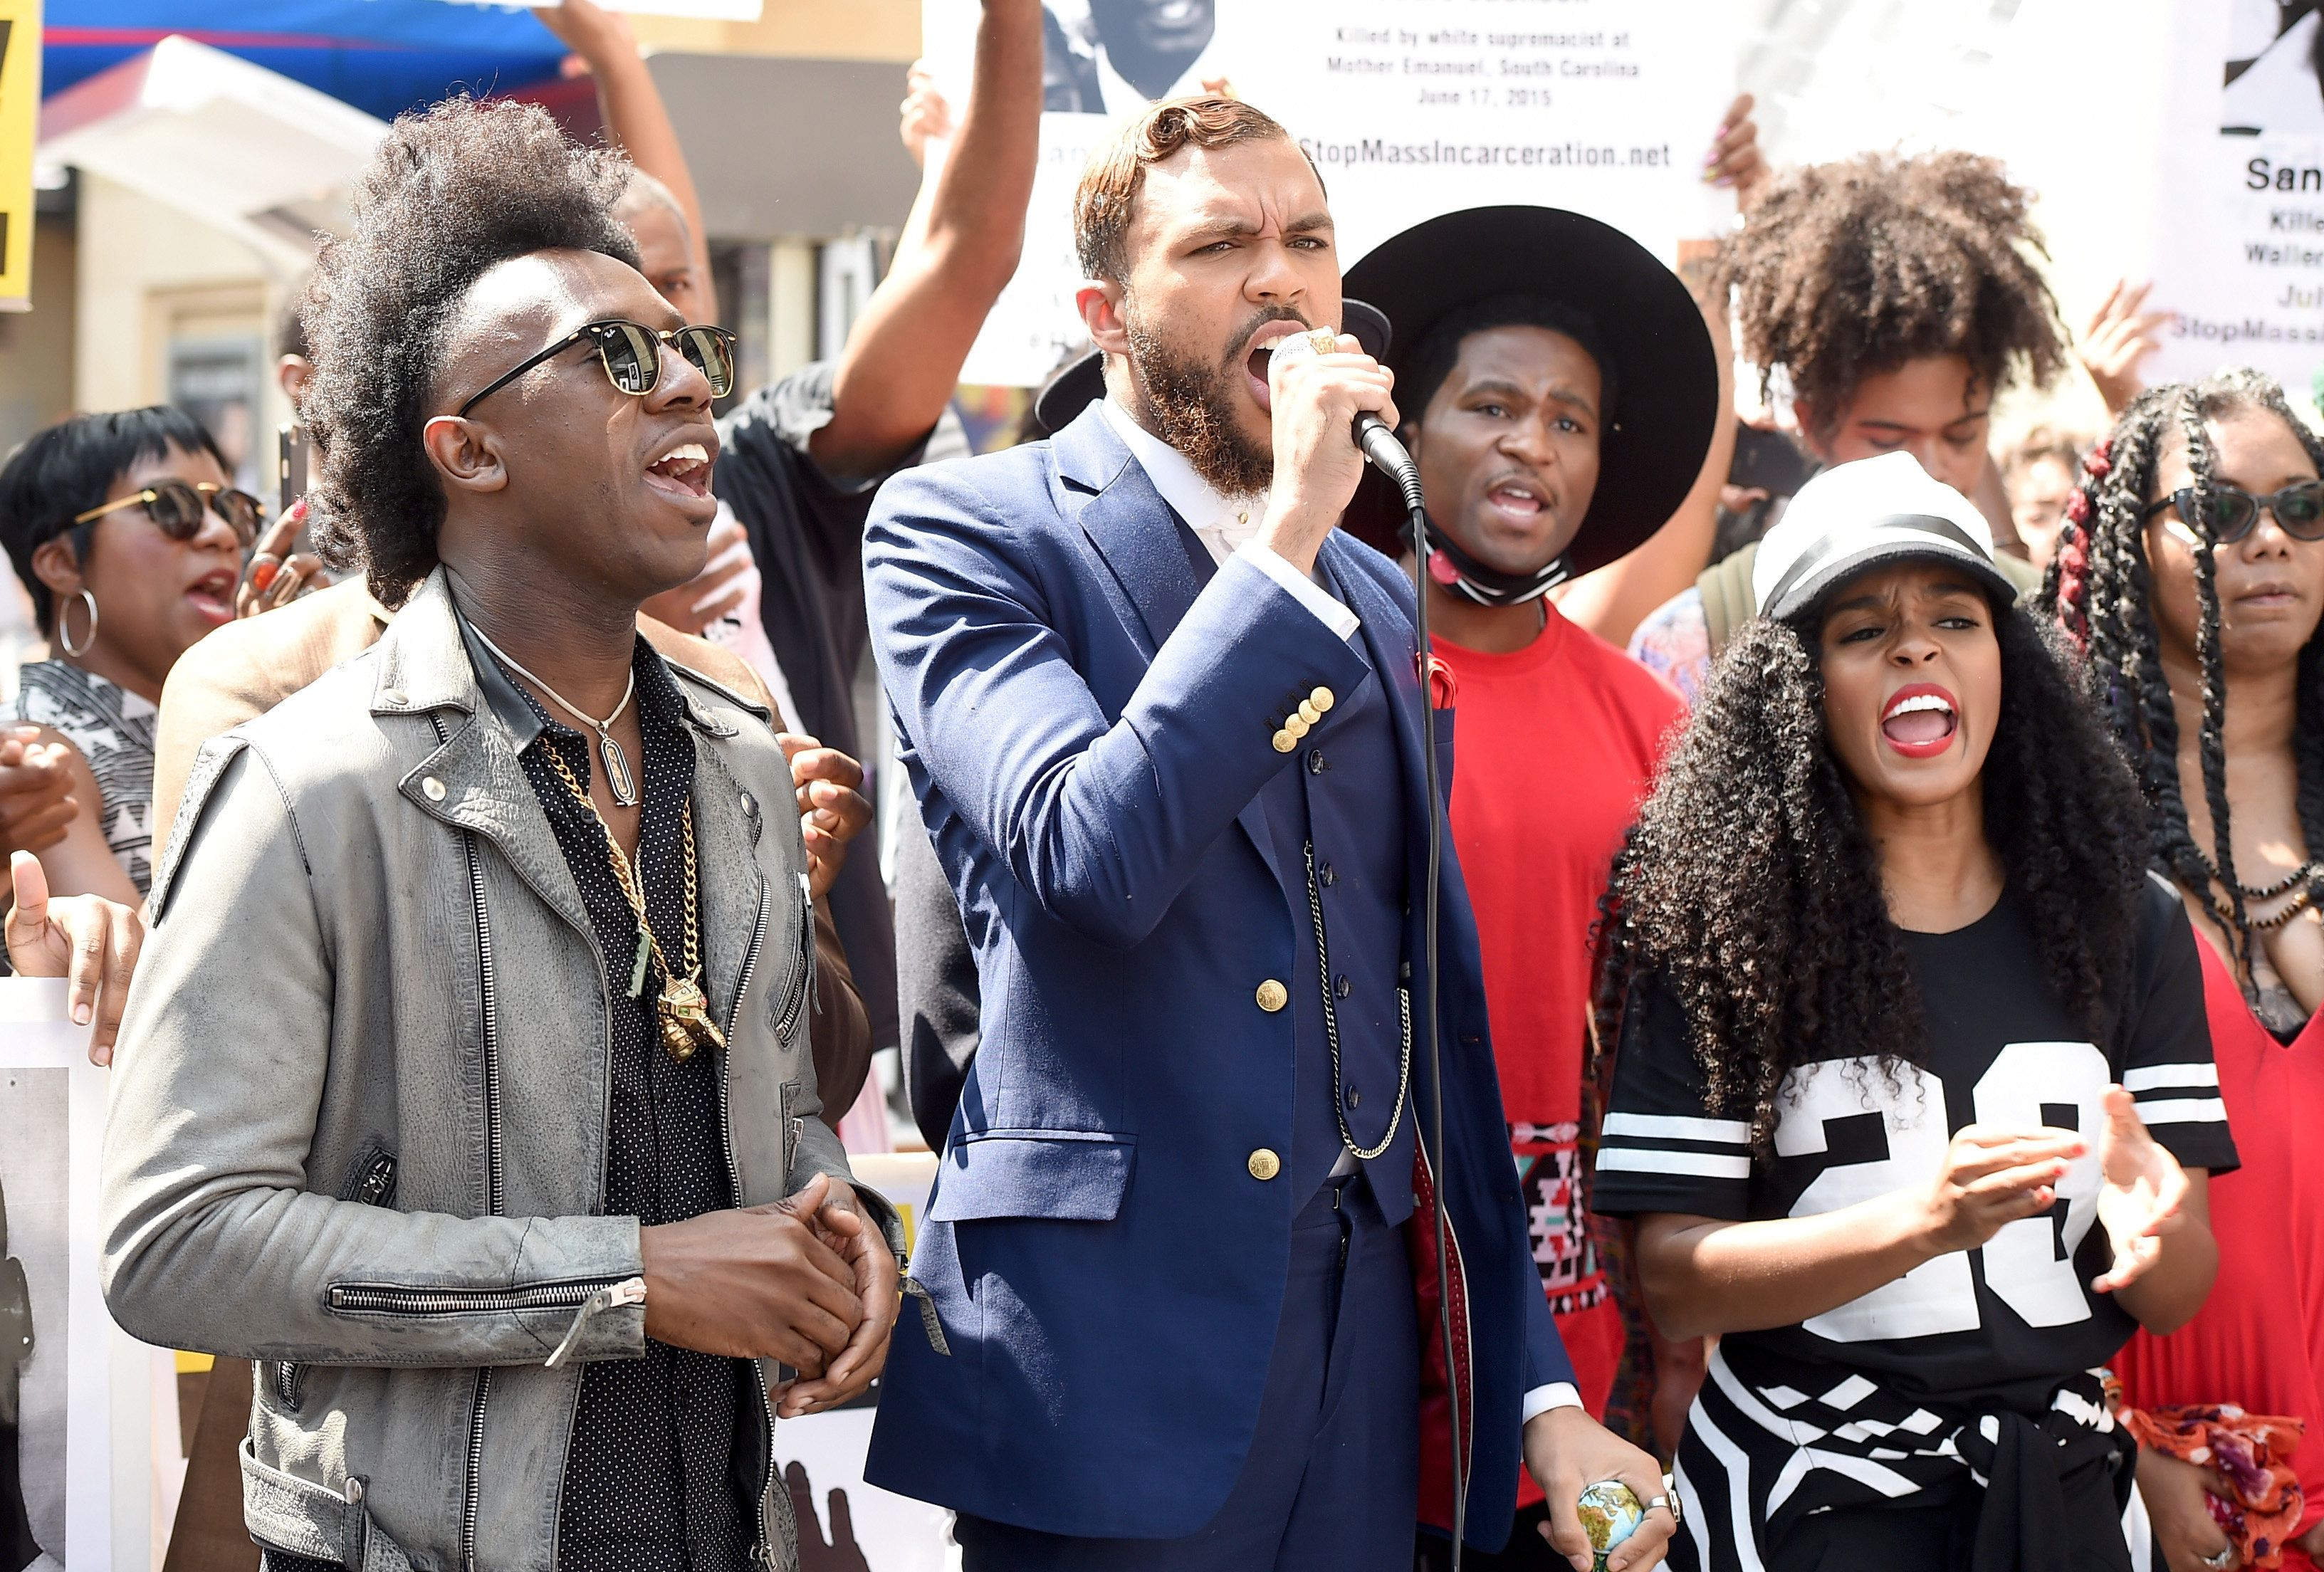 LOS ANGELES, CA - AUGUST 21:  Singers Jidenna (in bkue suit) and Janelle Monae perform and protest in coordination with Stop Mass Incarceration Network at Hollywood and Highland on August 21, 2015 in Los Angeles, California.  (Photo by Kevin Winter/Getty Images)